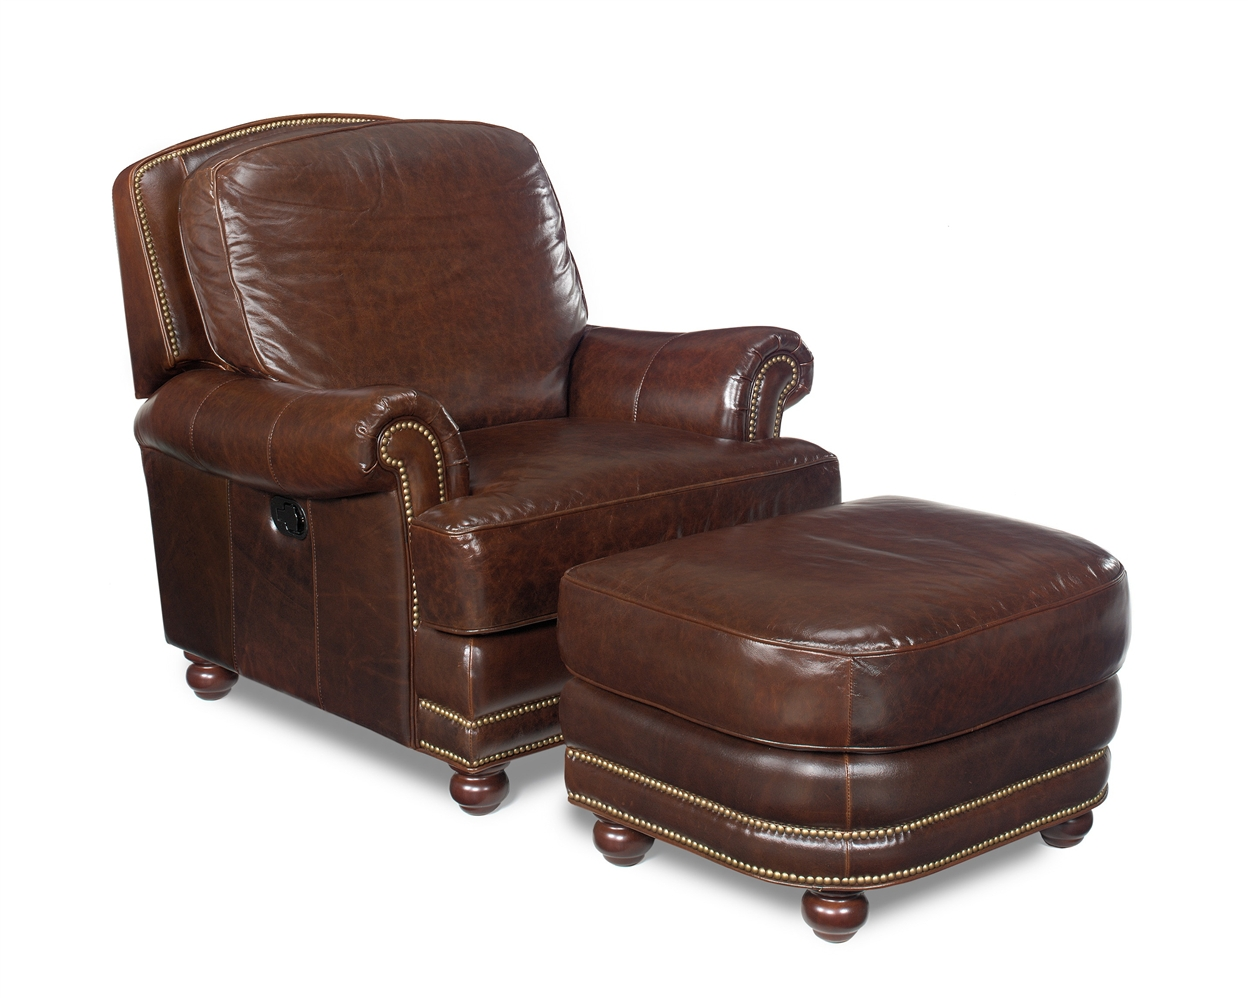 Luxury Leather Chairs leather furniture, tilt-back chair and ottoman set